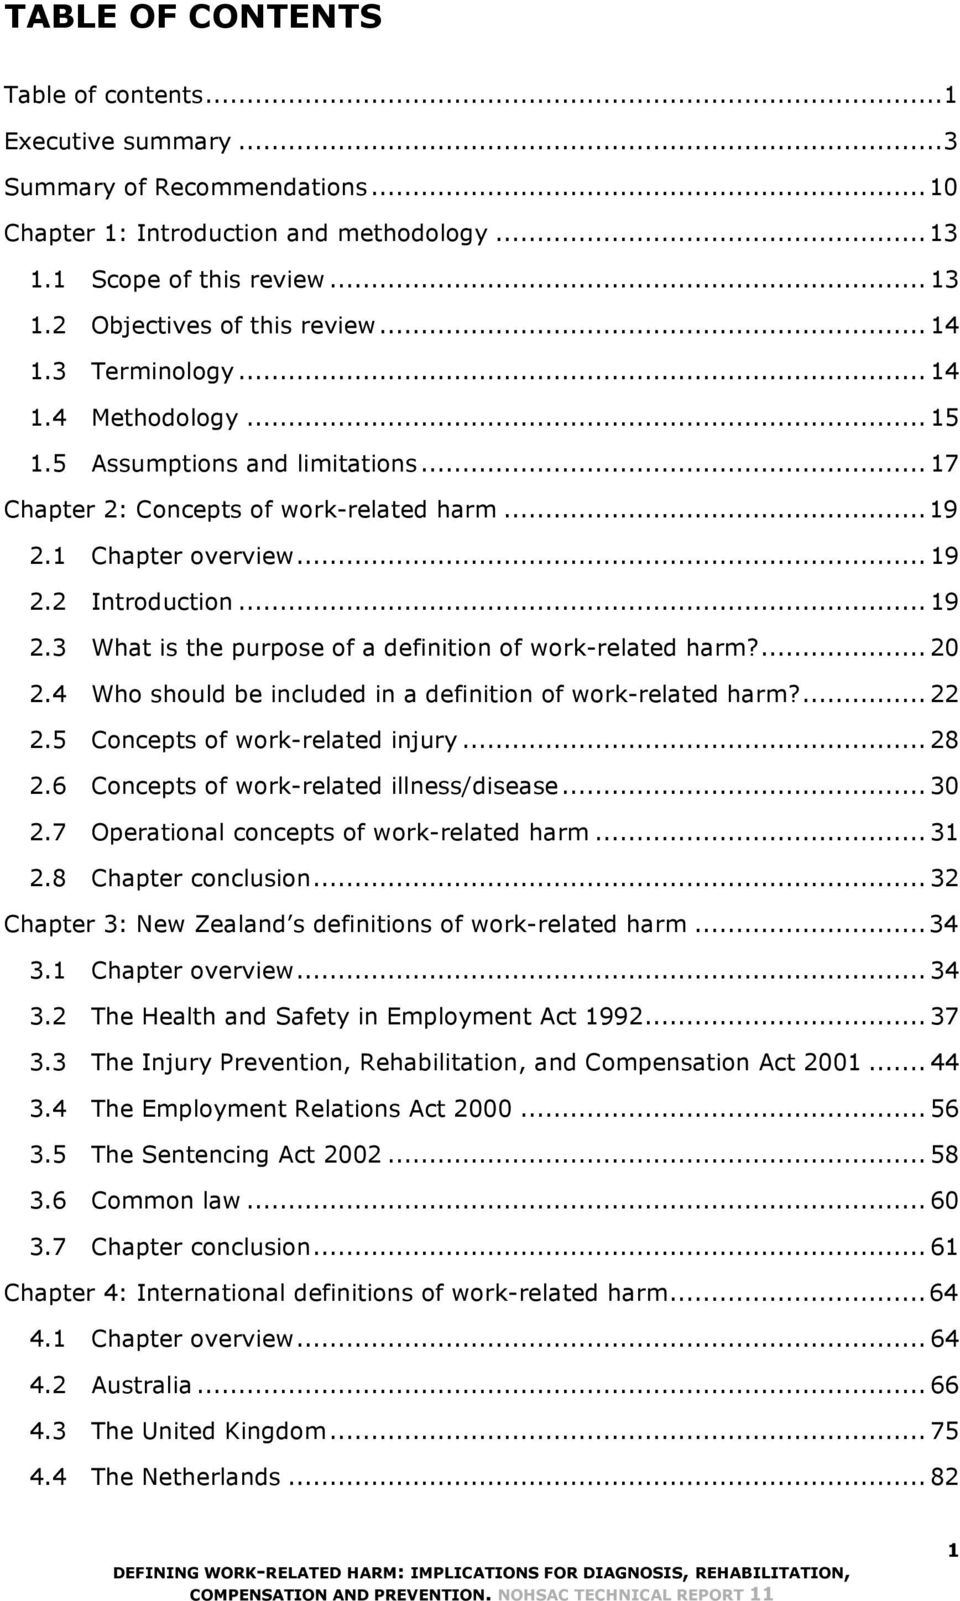 2 Introduction... 19 2.3 What is the purpose of a definition of work-related harm?... 20 2.4 Who should be included in a definition of work-related harm?... 22 2.5 Concepts of work-related injury.